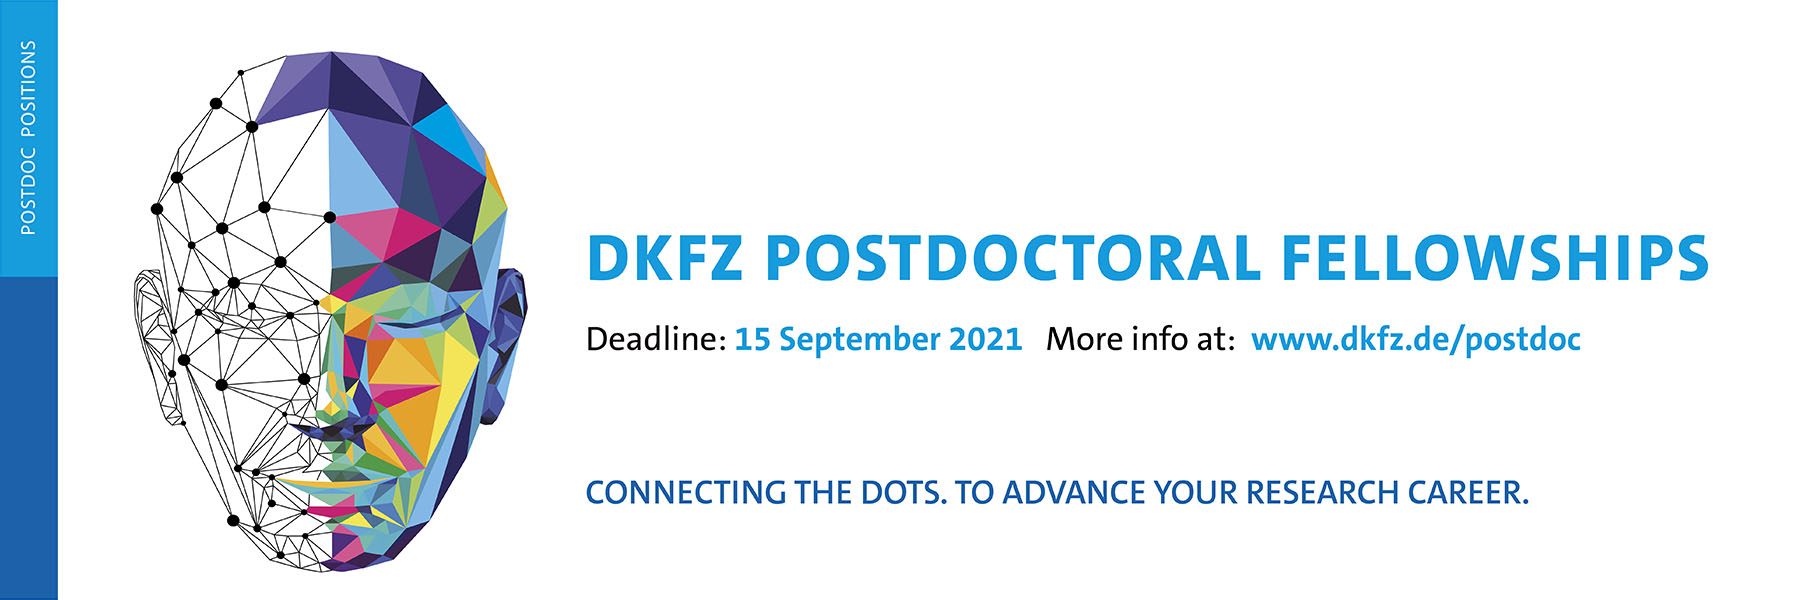 8 Postdoctoral Fellowships in Cancer Research at German